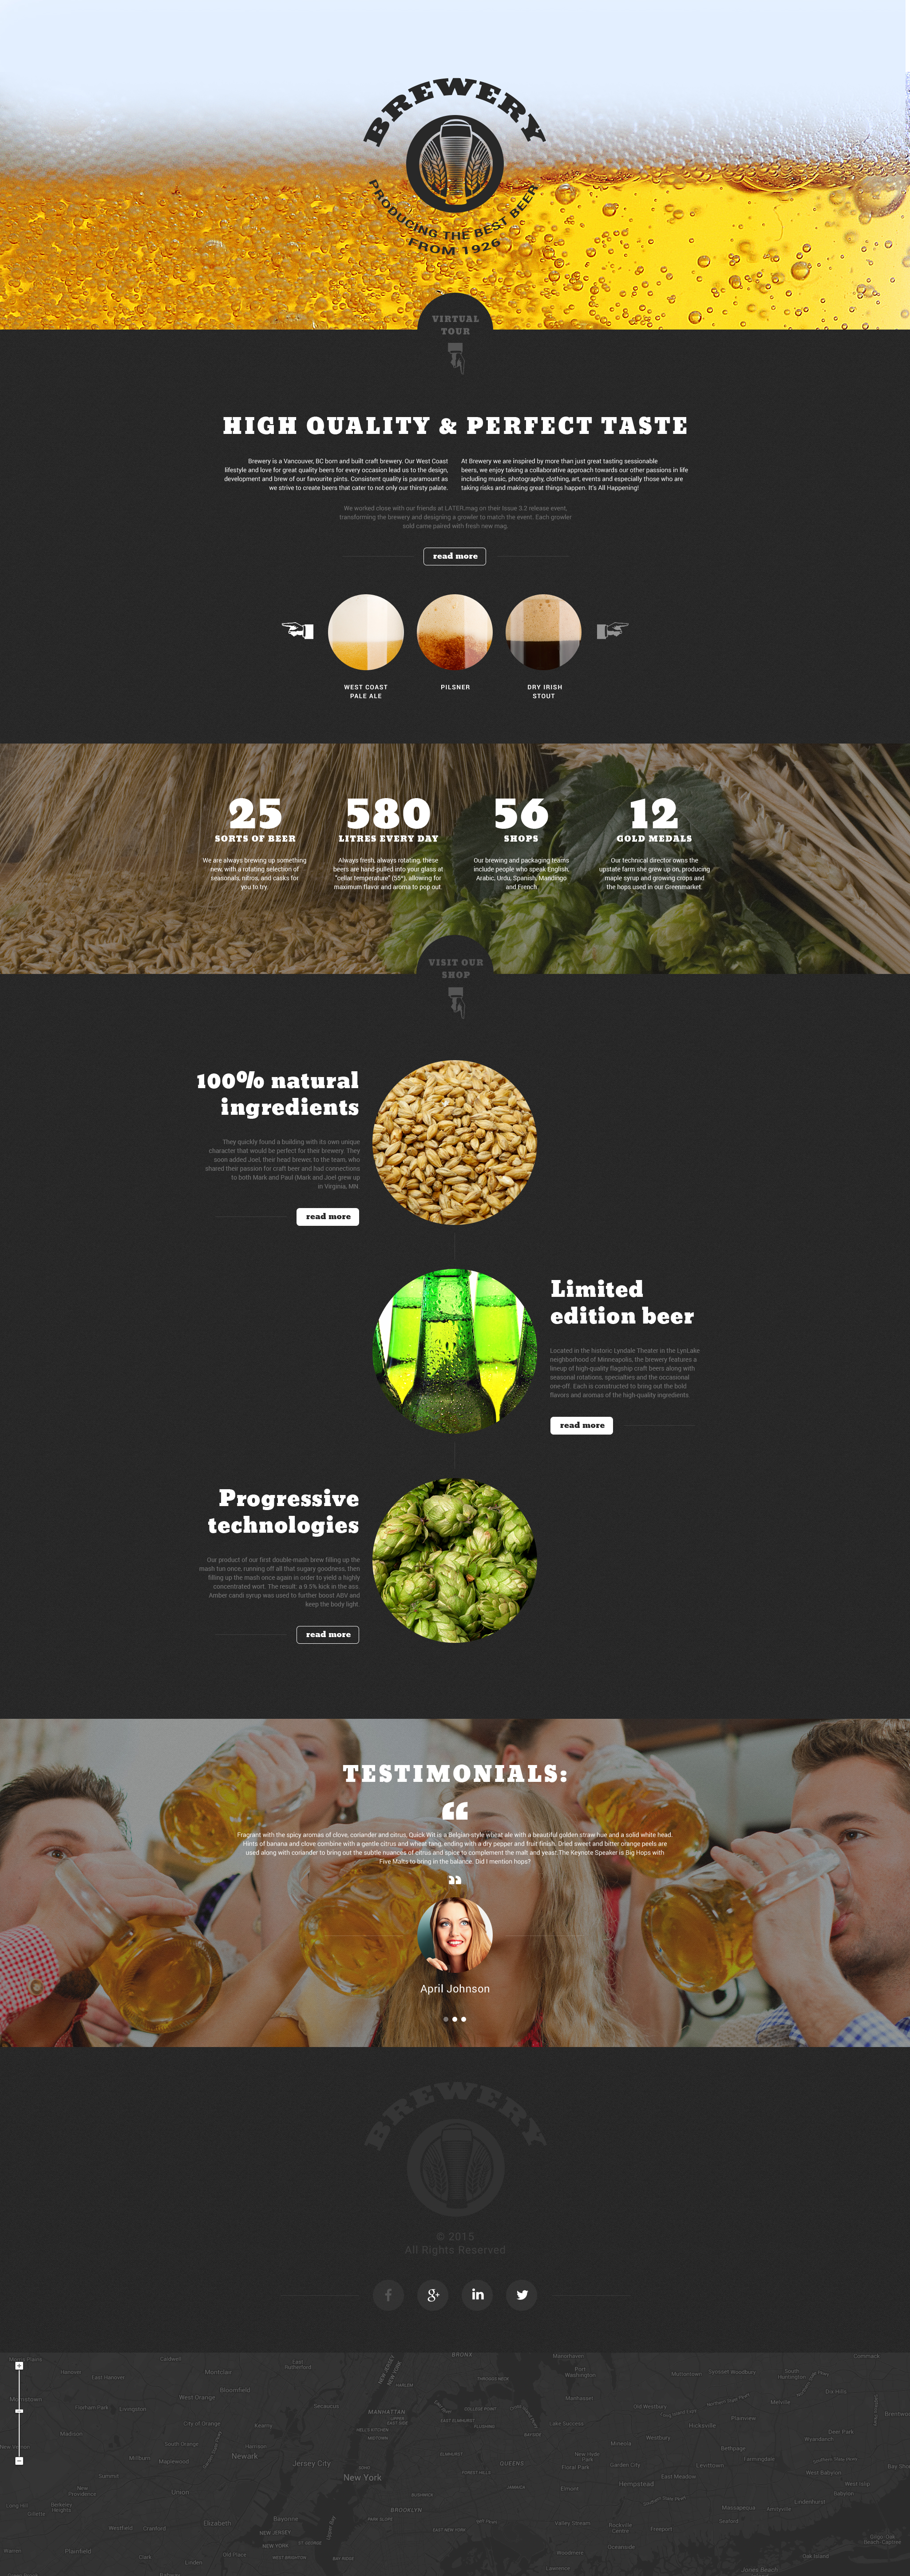 Responsive Archives - Page 63 of 79 - Zemez HTML